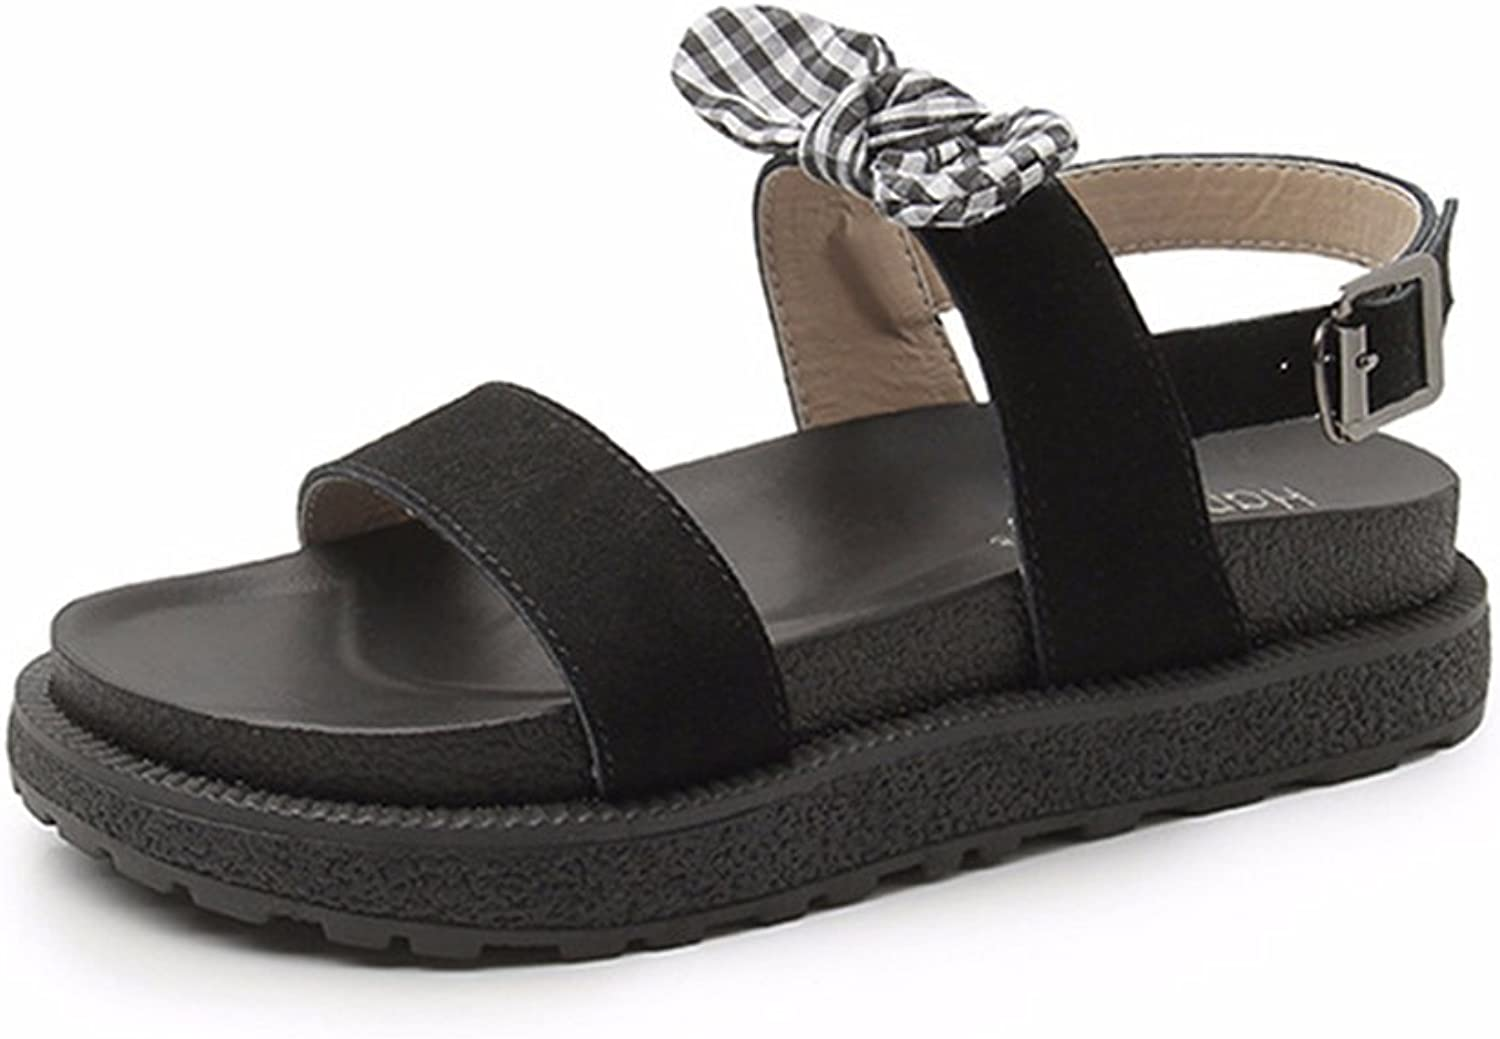 Tuoup Women's Bowknot Ankle Strap Sandles Leather Sandals